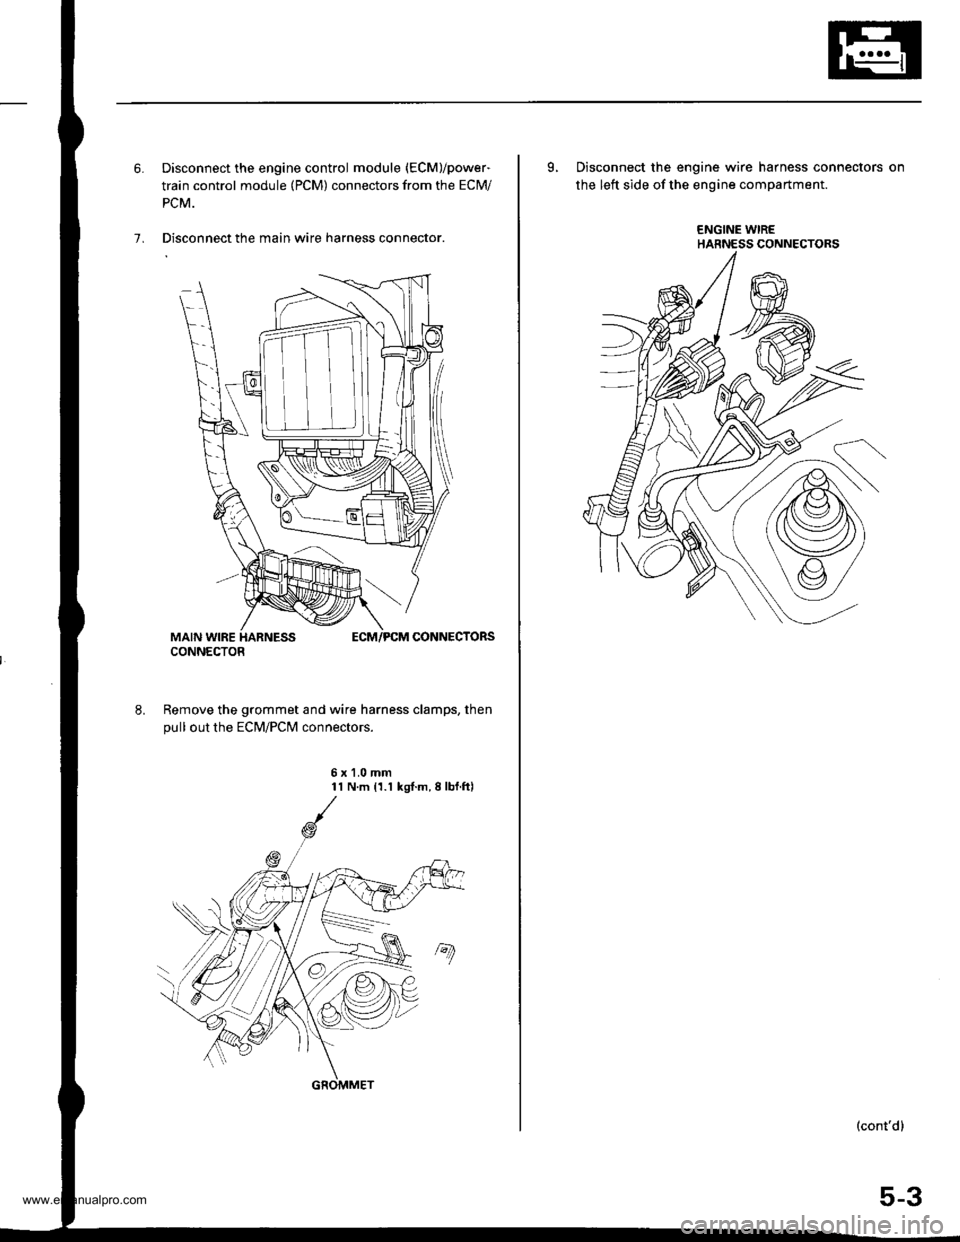 Engine Honda Cr V 2000 Rd1 Rd3 1g Workshop Manual Wire Harness Clamps Page 99 Of 1395